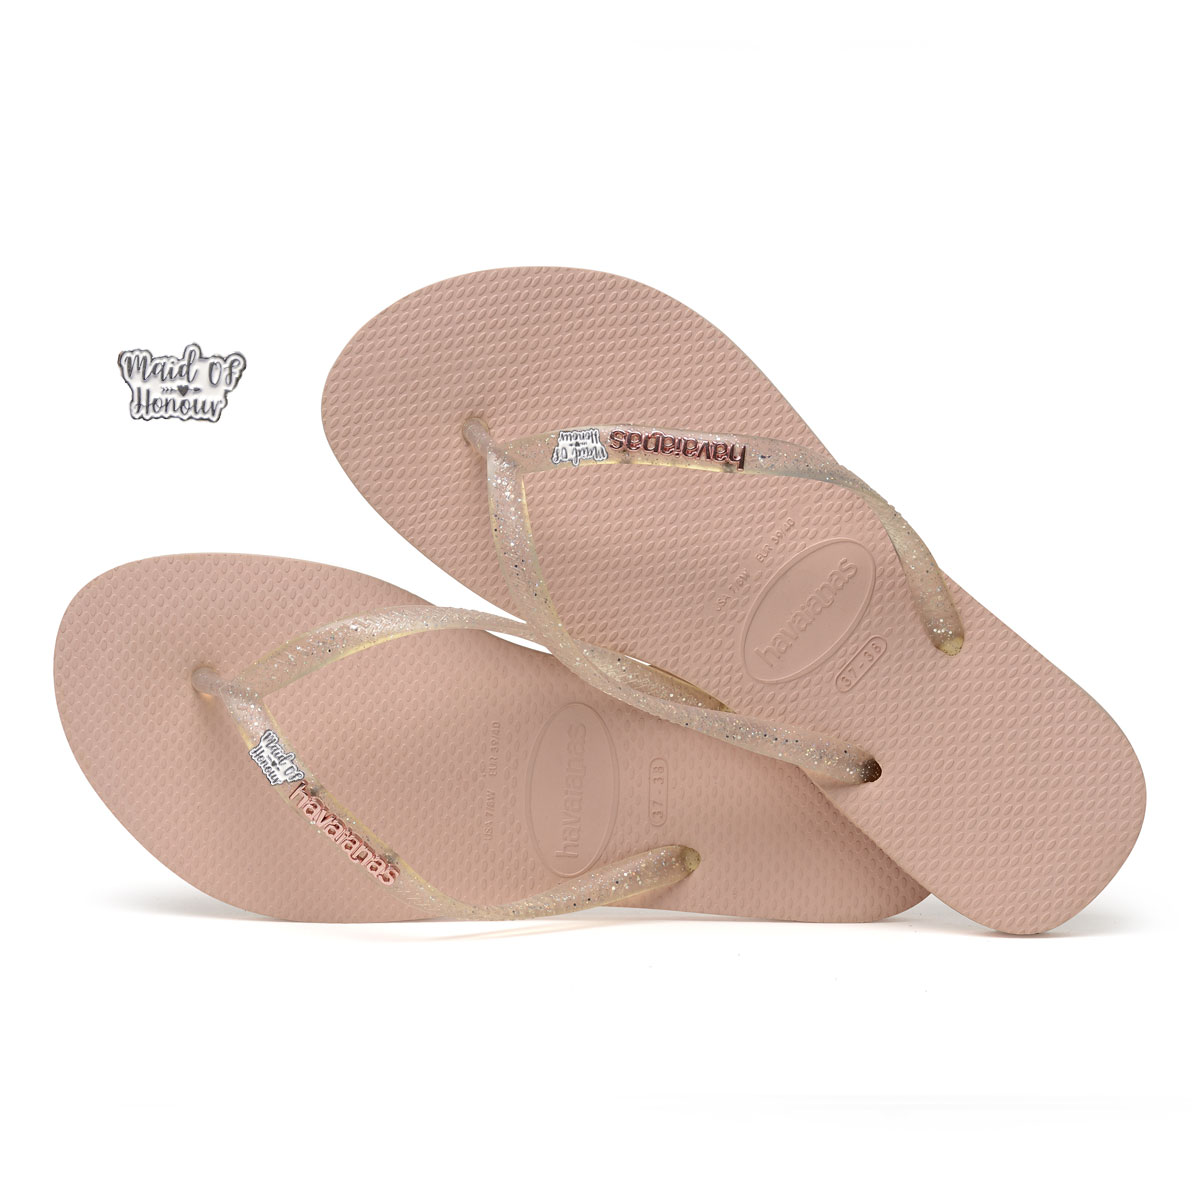 Havaianas Rose Metallic Flip-Flops with Silver & White Maid of Honour